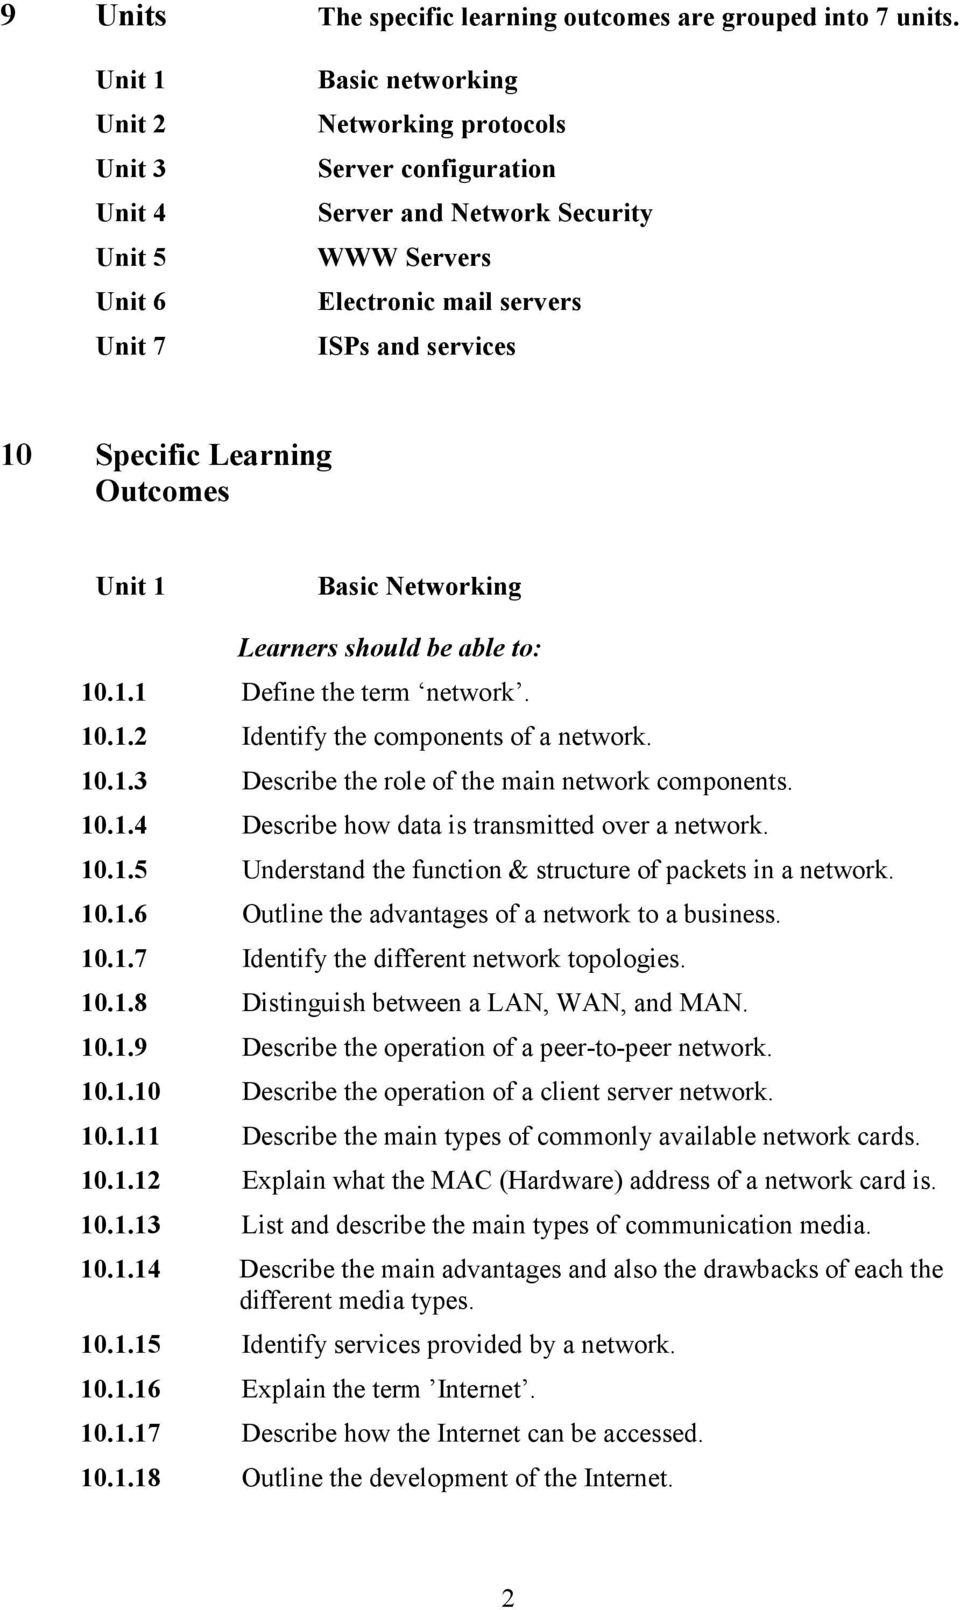 Specific Learning Outcomes Unit 1 Basic Networking Learners should be able to: 10.1.1 Define the term network. 10.1.2 Identify the components of a network. 10.1.3 Describe the role of the main network components.